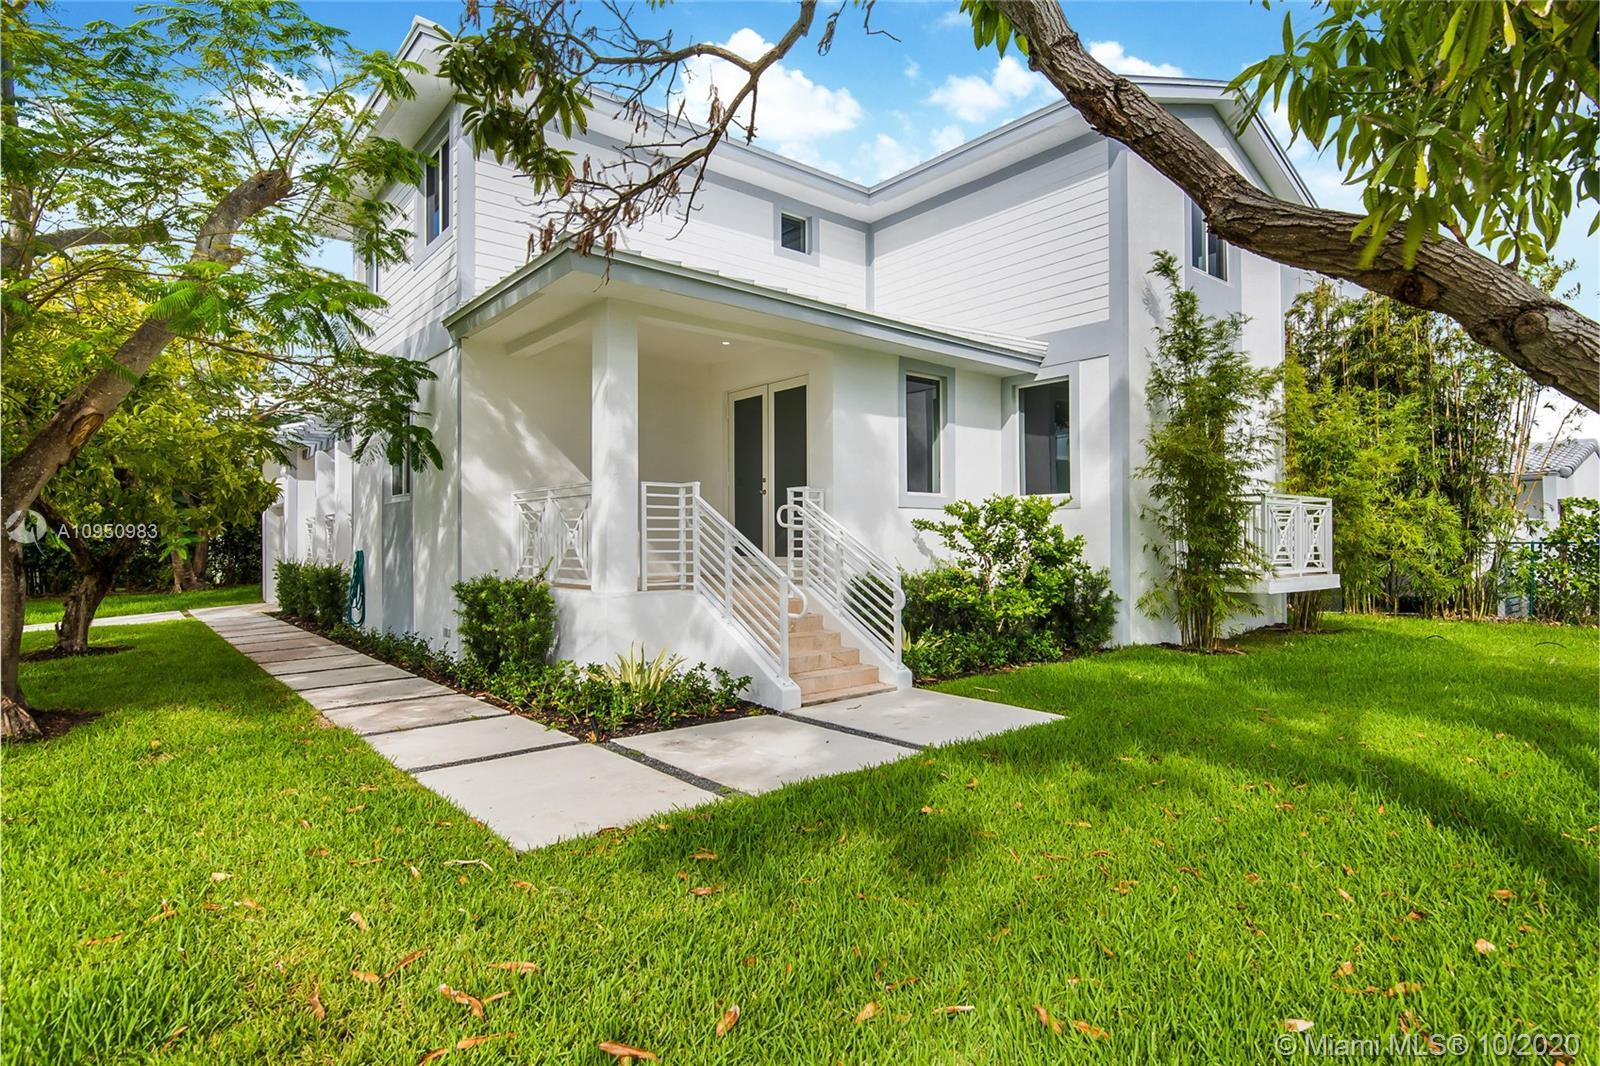 NEW CONSTRUCTION IN SURFSIDE on a large corner lot! New two-story home with 4 large bedrooms, 3 bath